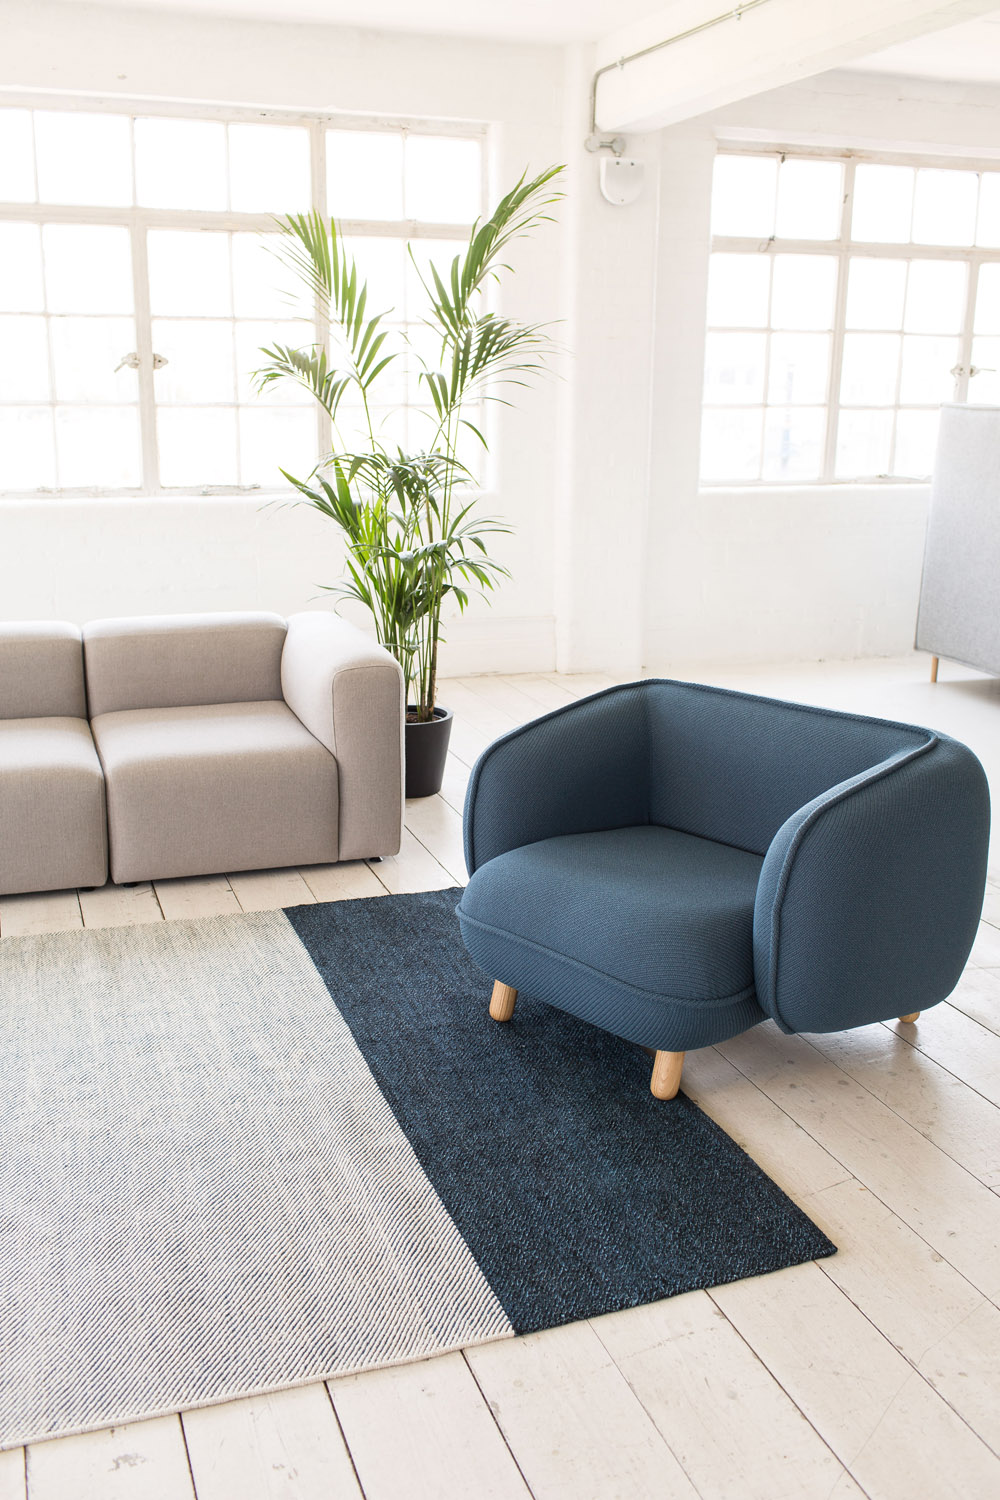 Basset lounge chair by Icons of Denmark